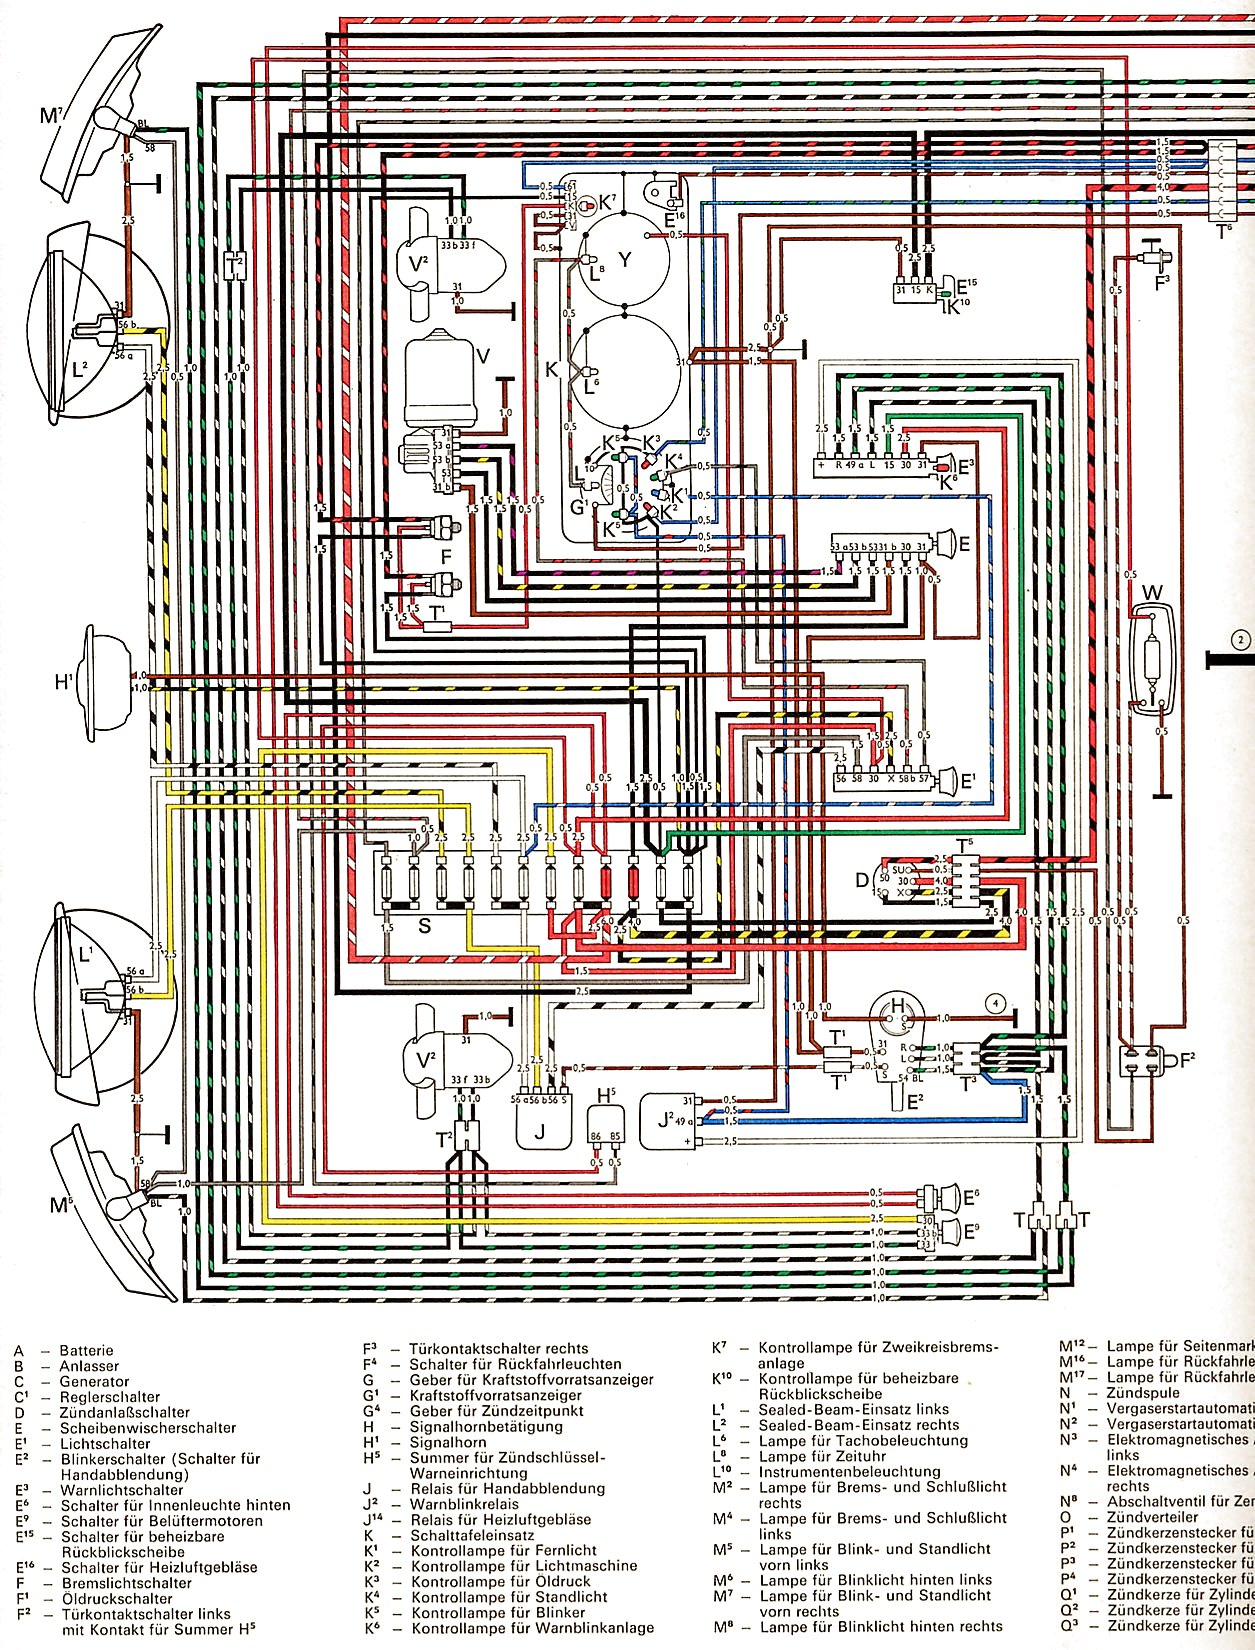 Transporter_USA_from_August_1971 1 how to read vw wiring diagrams basic motorcycle wiring diagram Wiring Harness Diagram at gsmportal.co